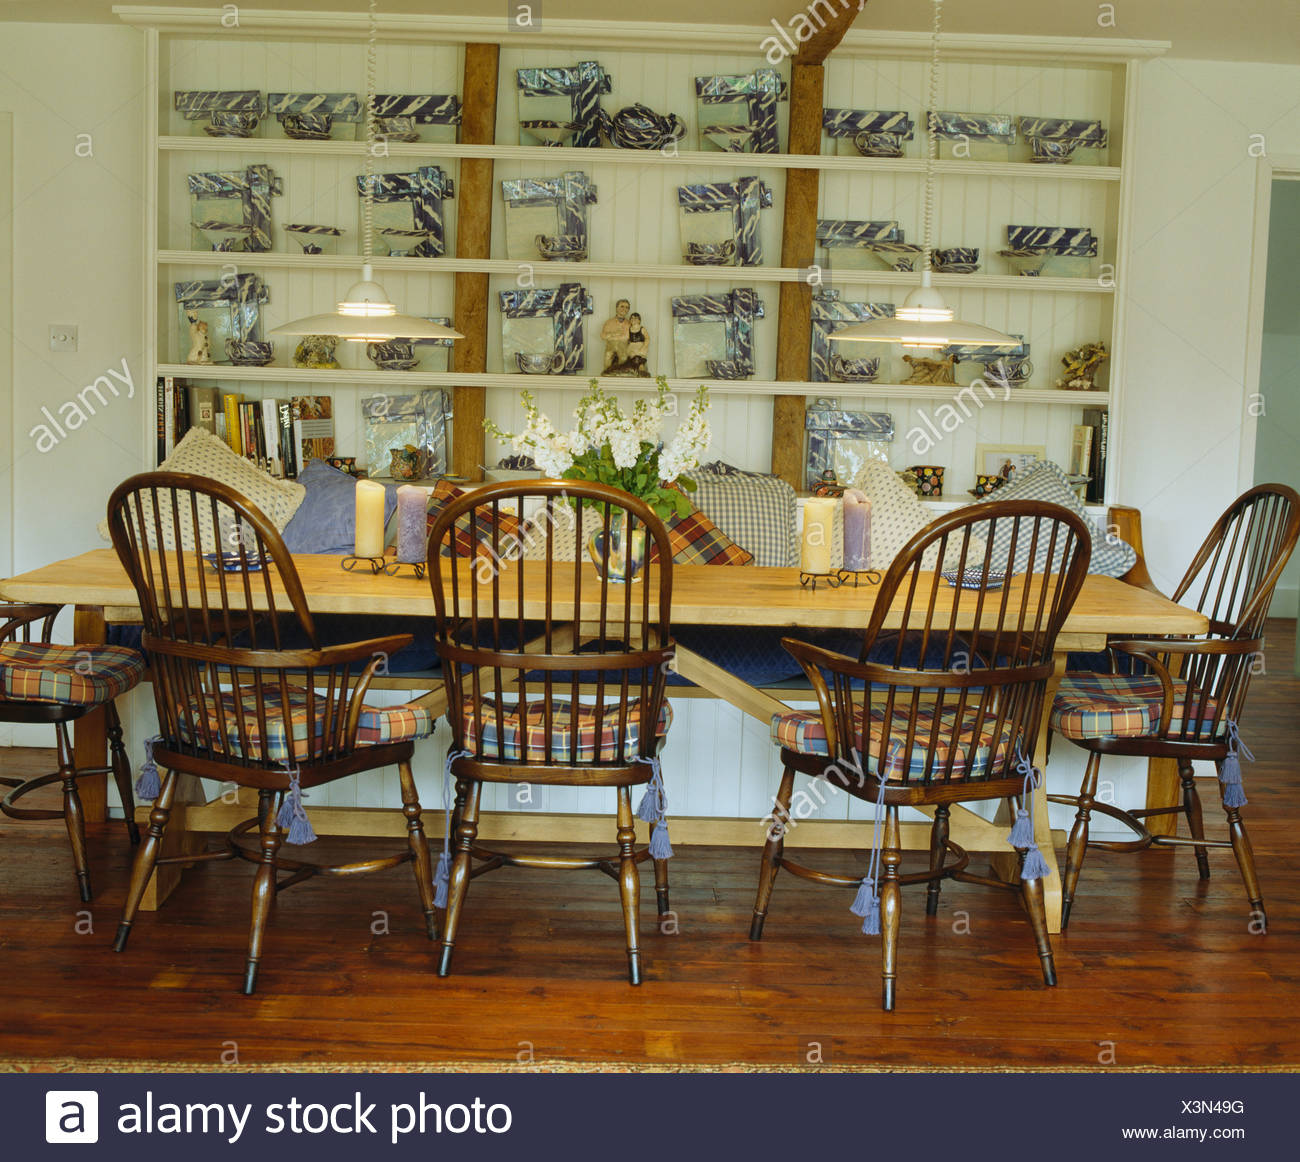 Antique Windsor Chairs And Simple Pine Table In Country Dining Room With Blue White China Frames On Shelves